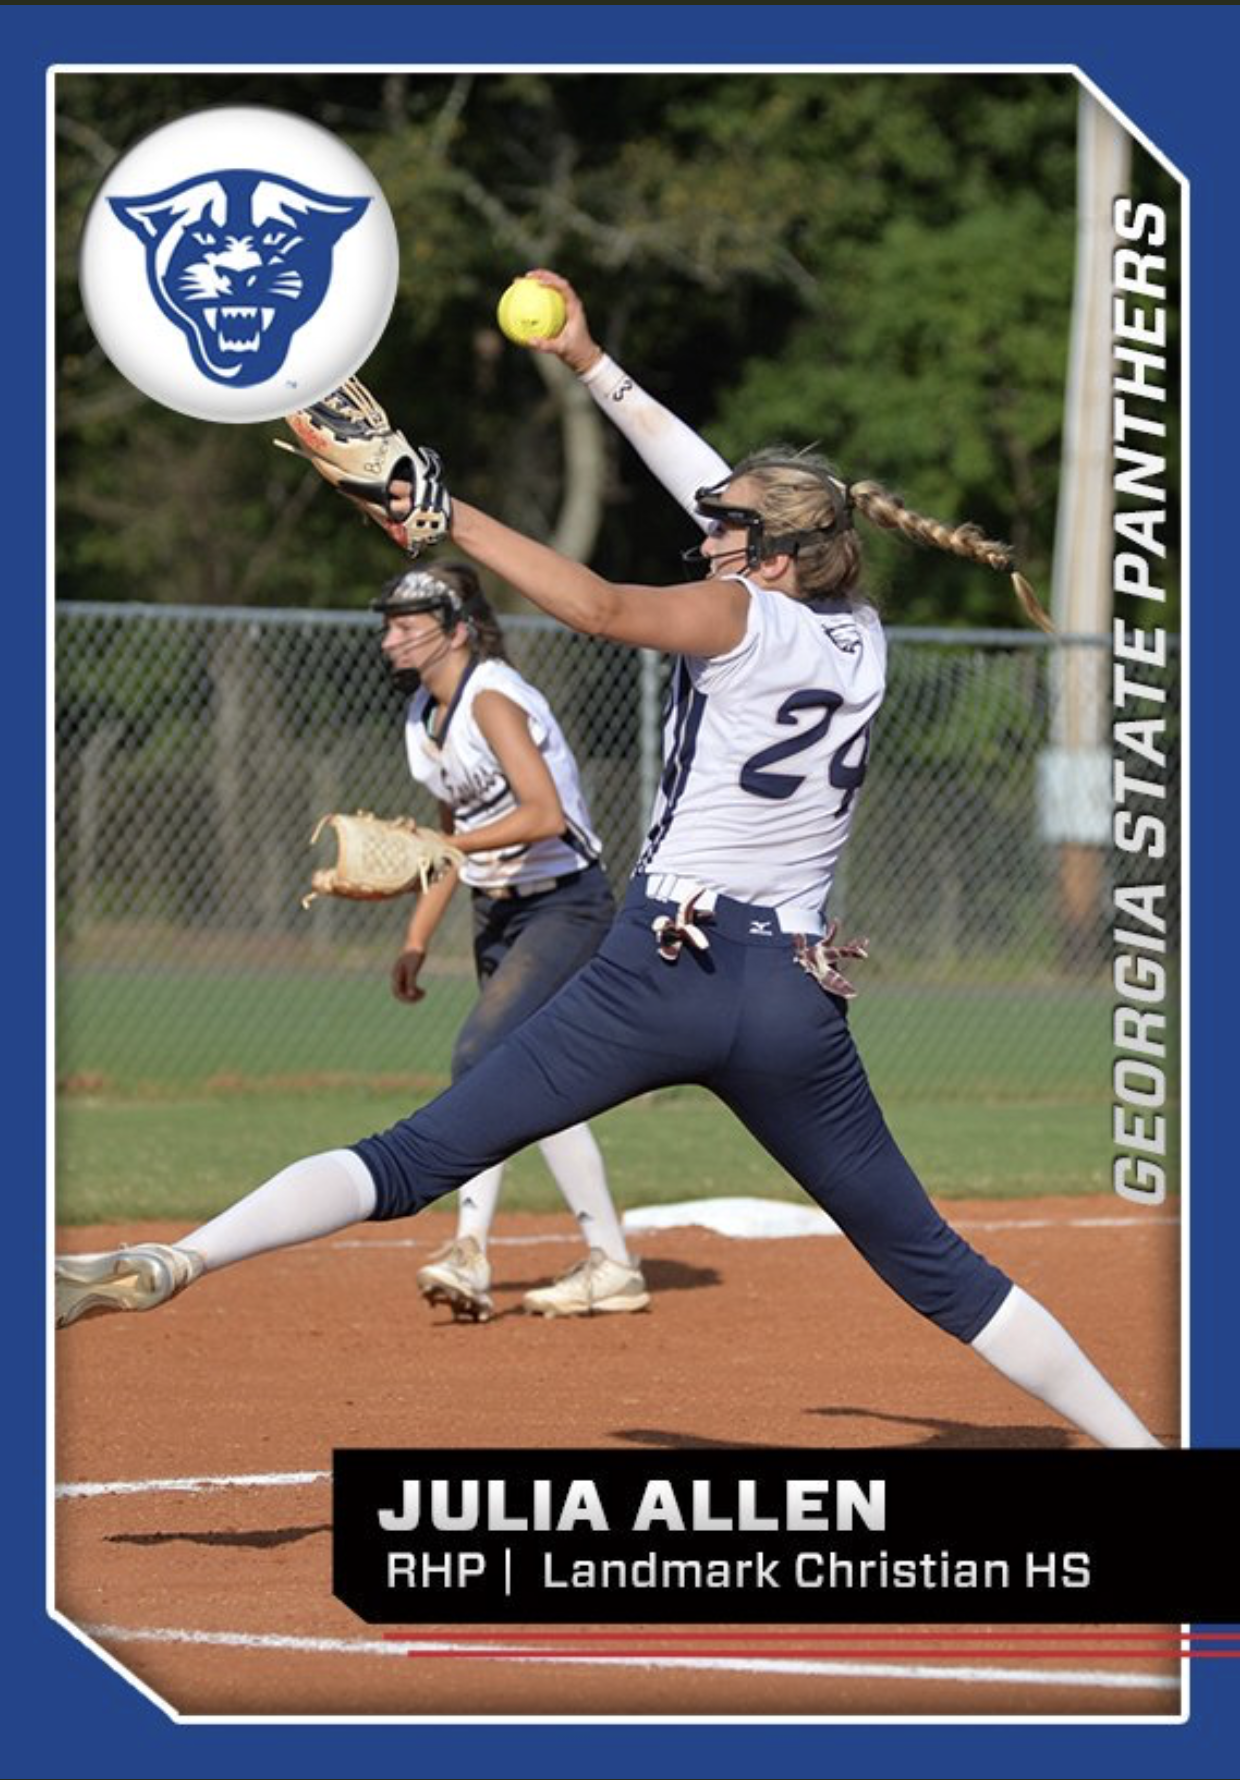 JULIA ALLEN - Julia has been training at goperformance in and out of season for the past five years. Her older brother also trained with us.She's a recent graduate of Landmark Christian School and signed to play softball at Georgia State University.